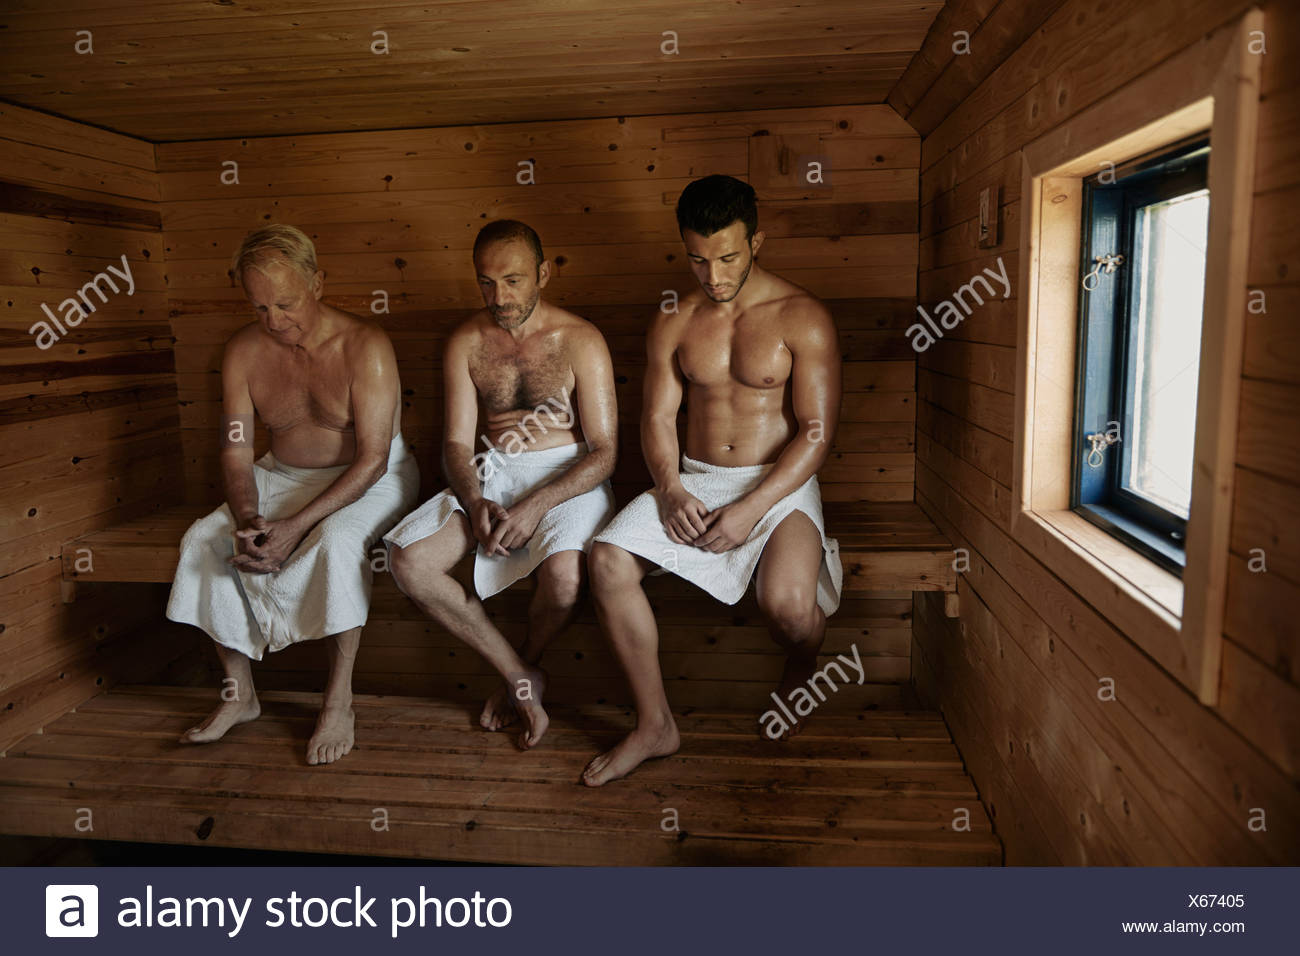 Three men sitting in sauna with heads bowed - Stock Image